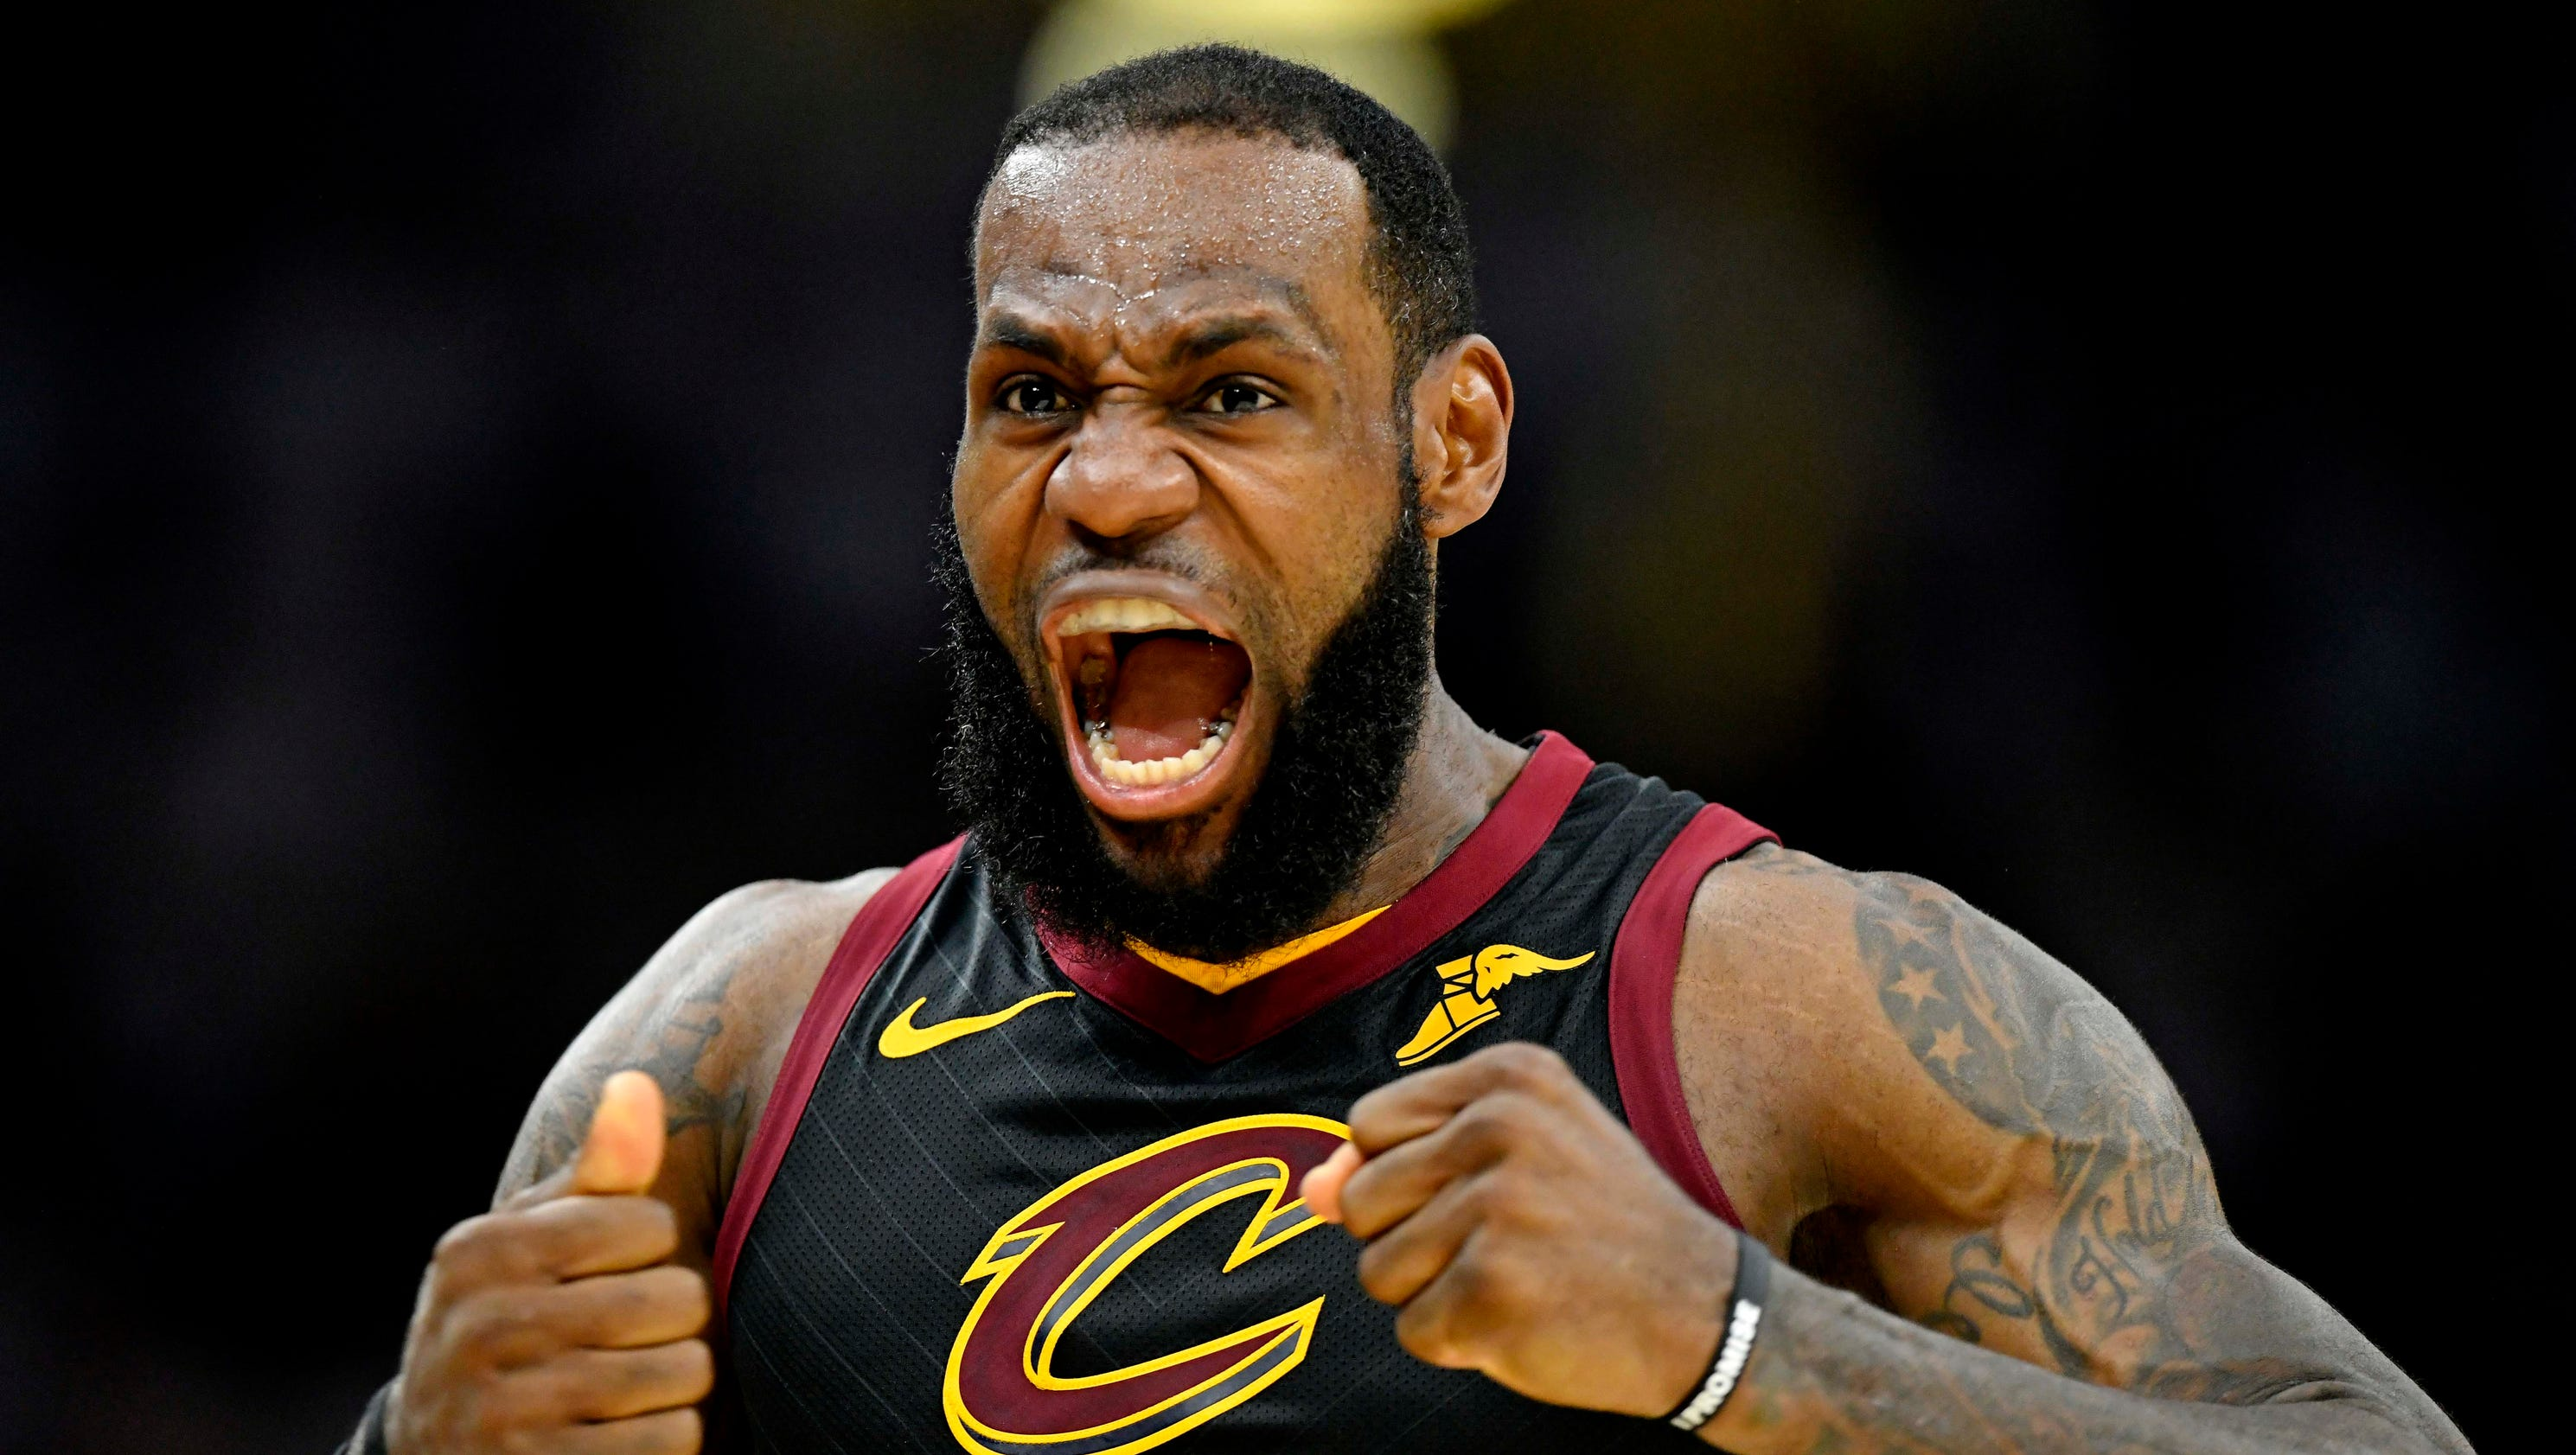 LeBron James, Cavaliers force Game 7 with 109-99 win over Celtics